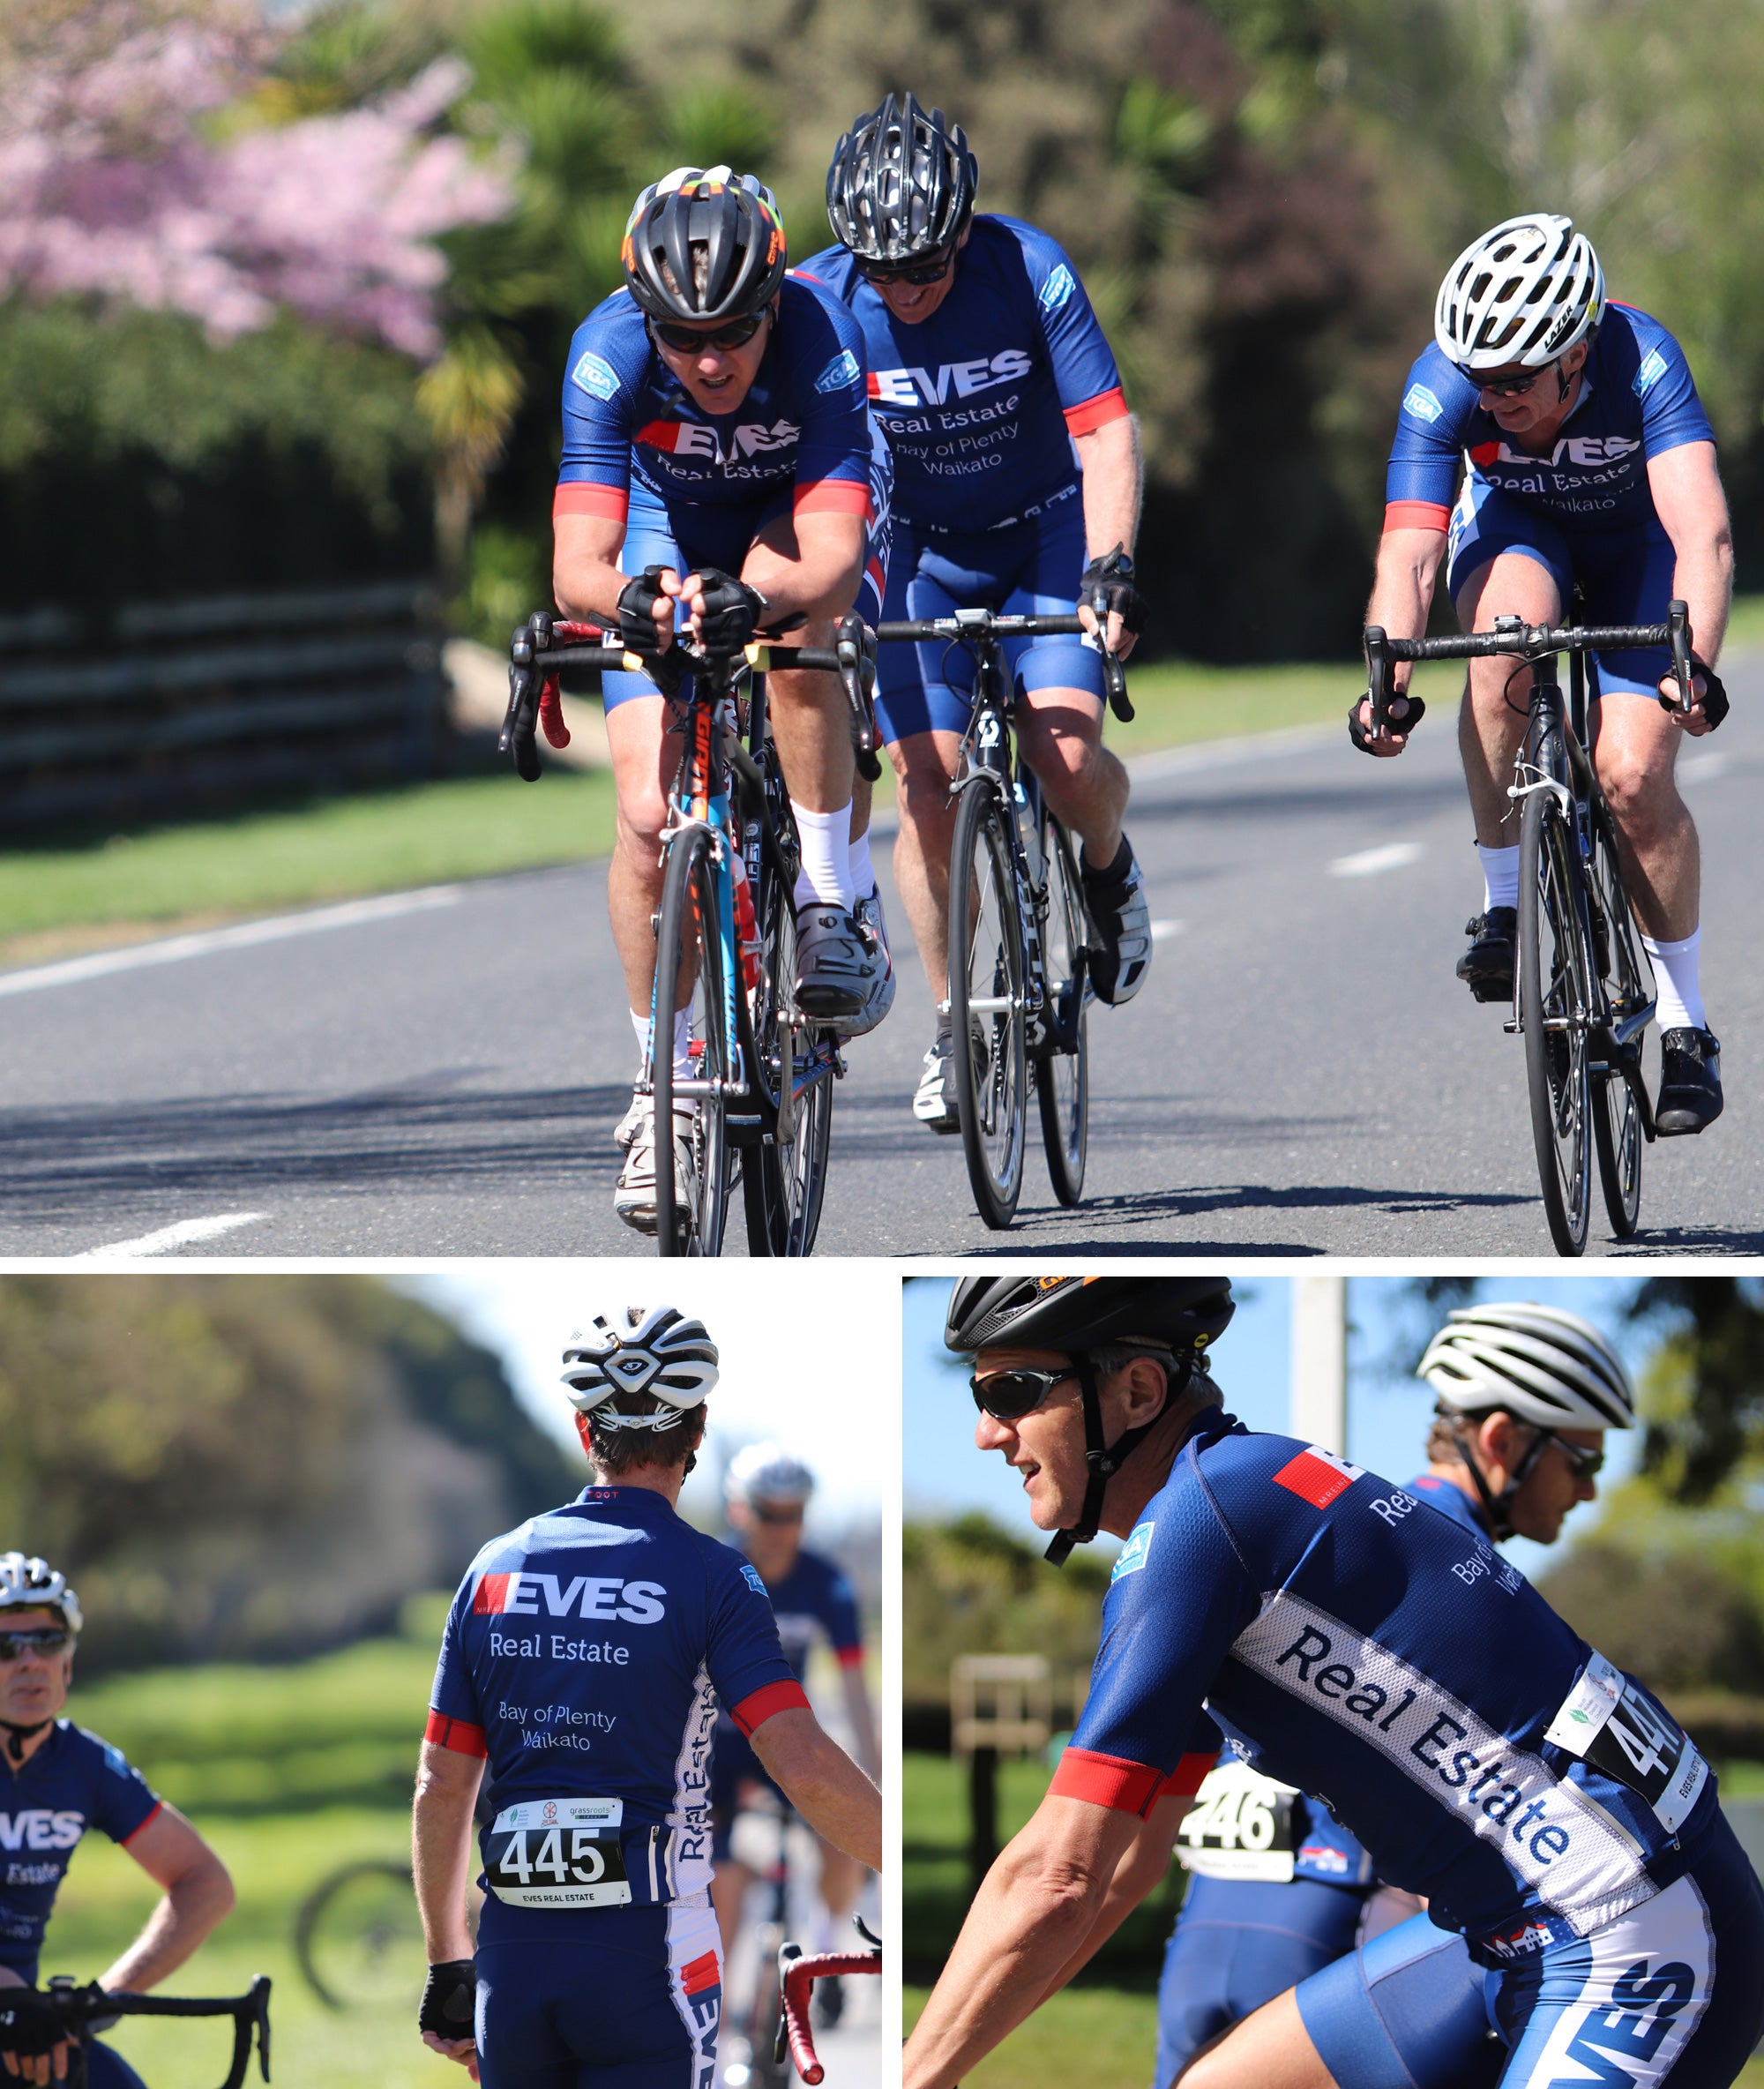 Eves Custom Cycling Team Kit